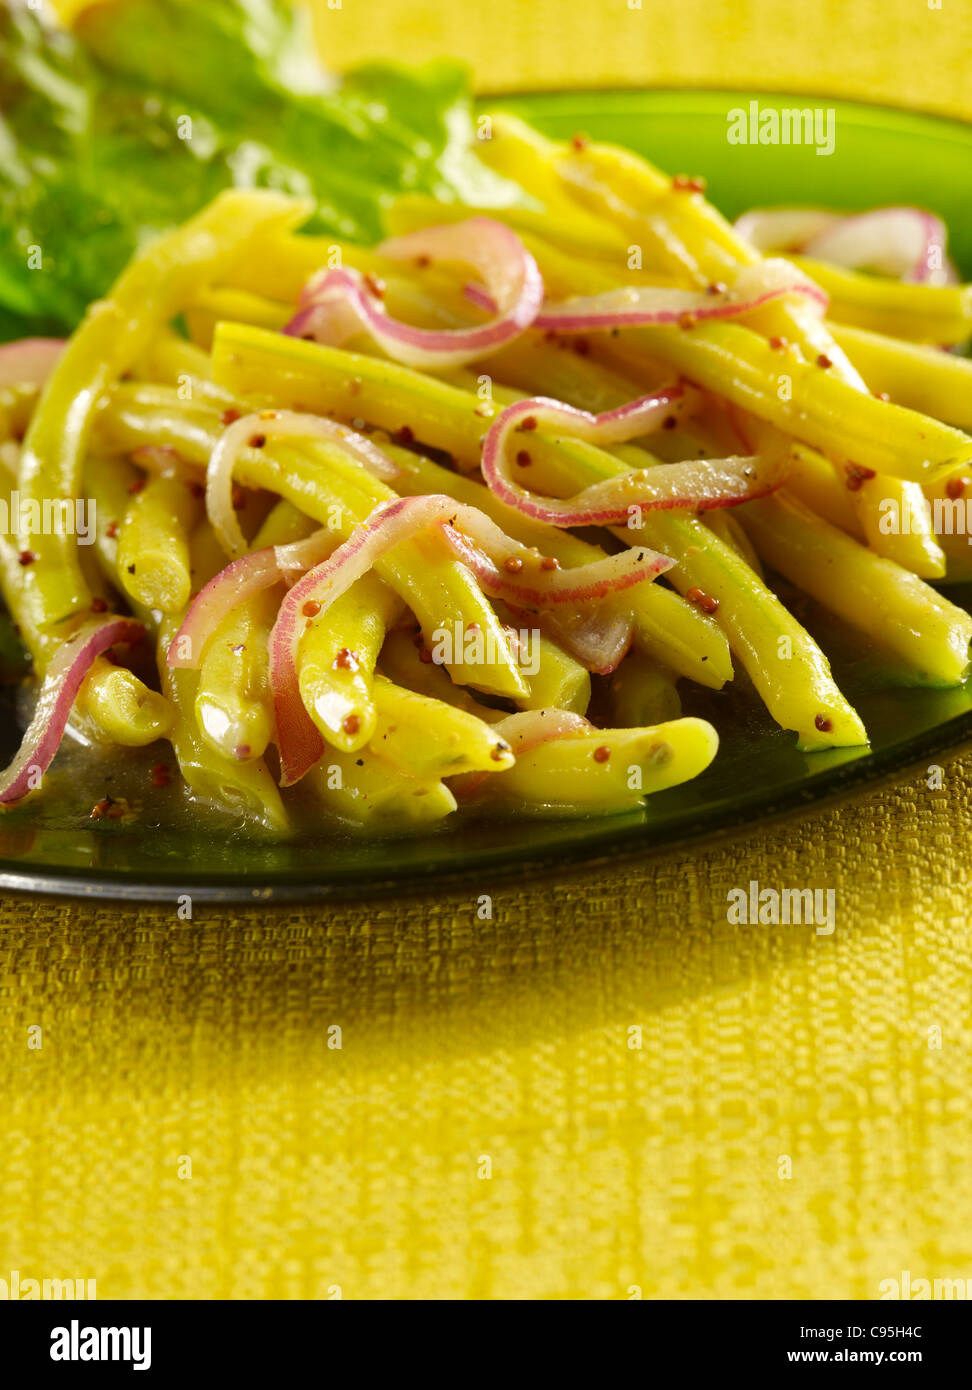 Yellow wax bean salad with onions - Stock Image